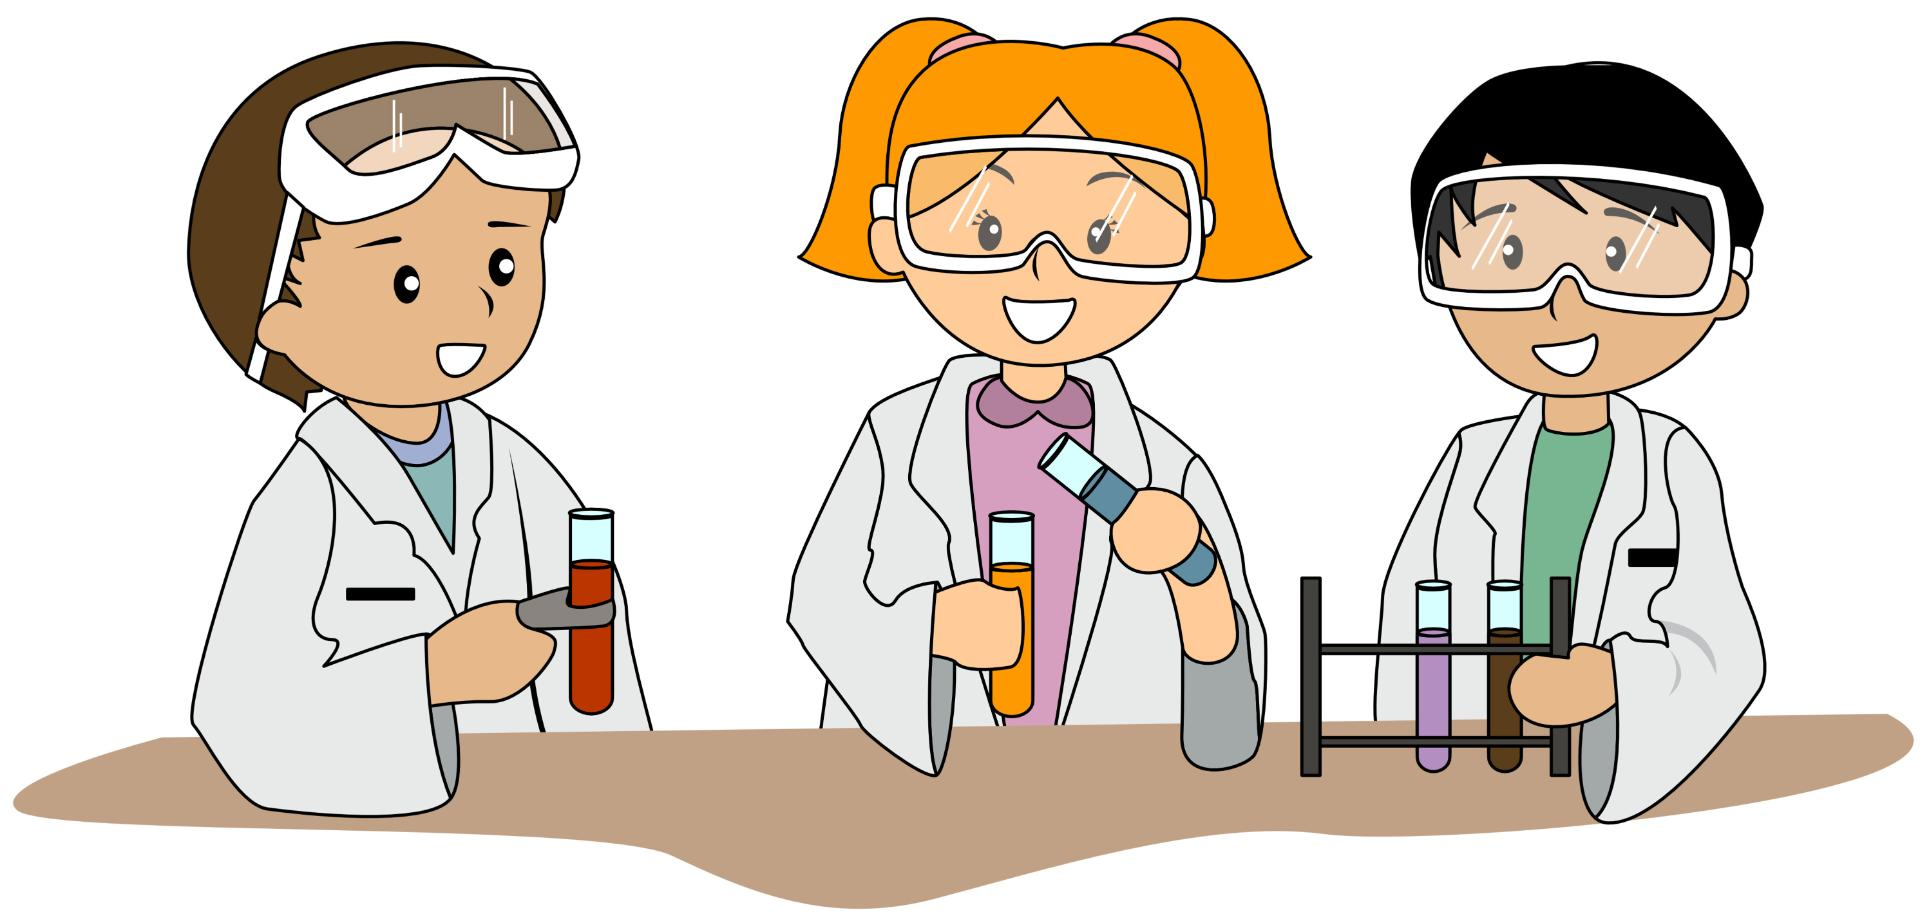 kids-science-scientists-illustration-school-education